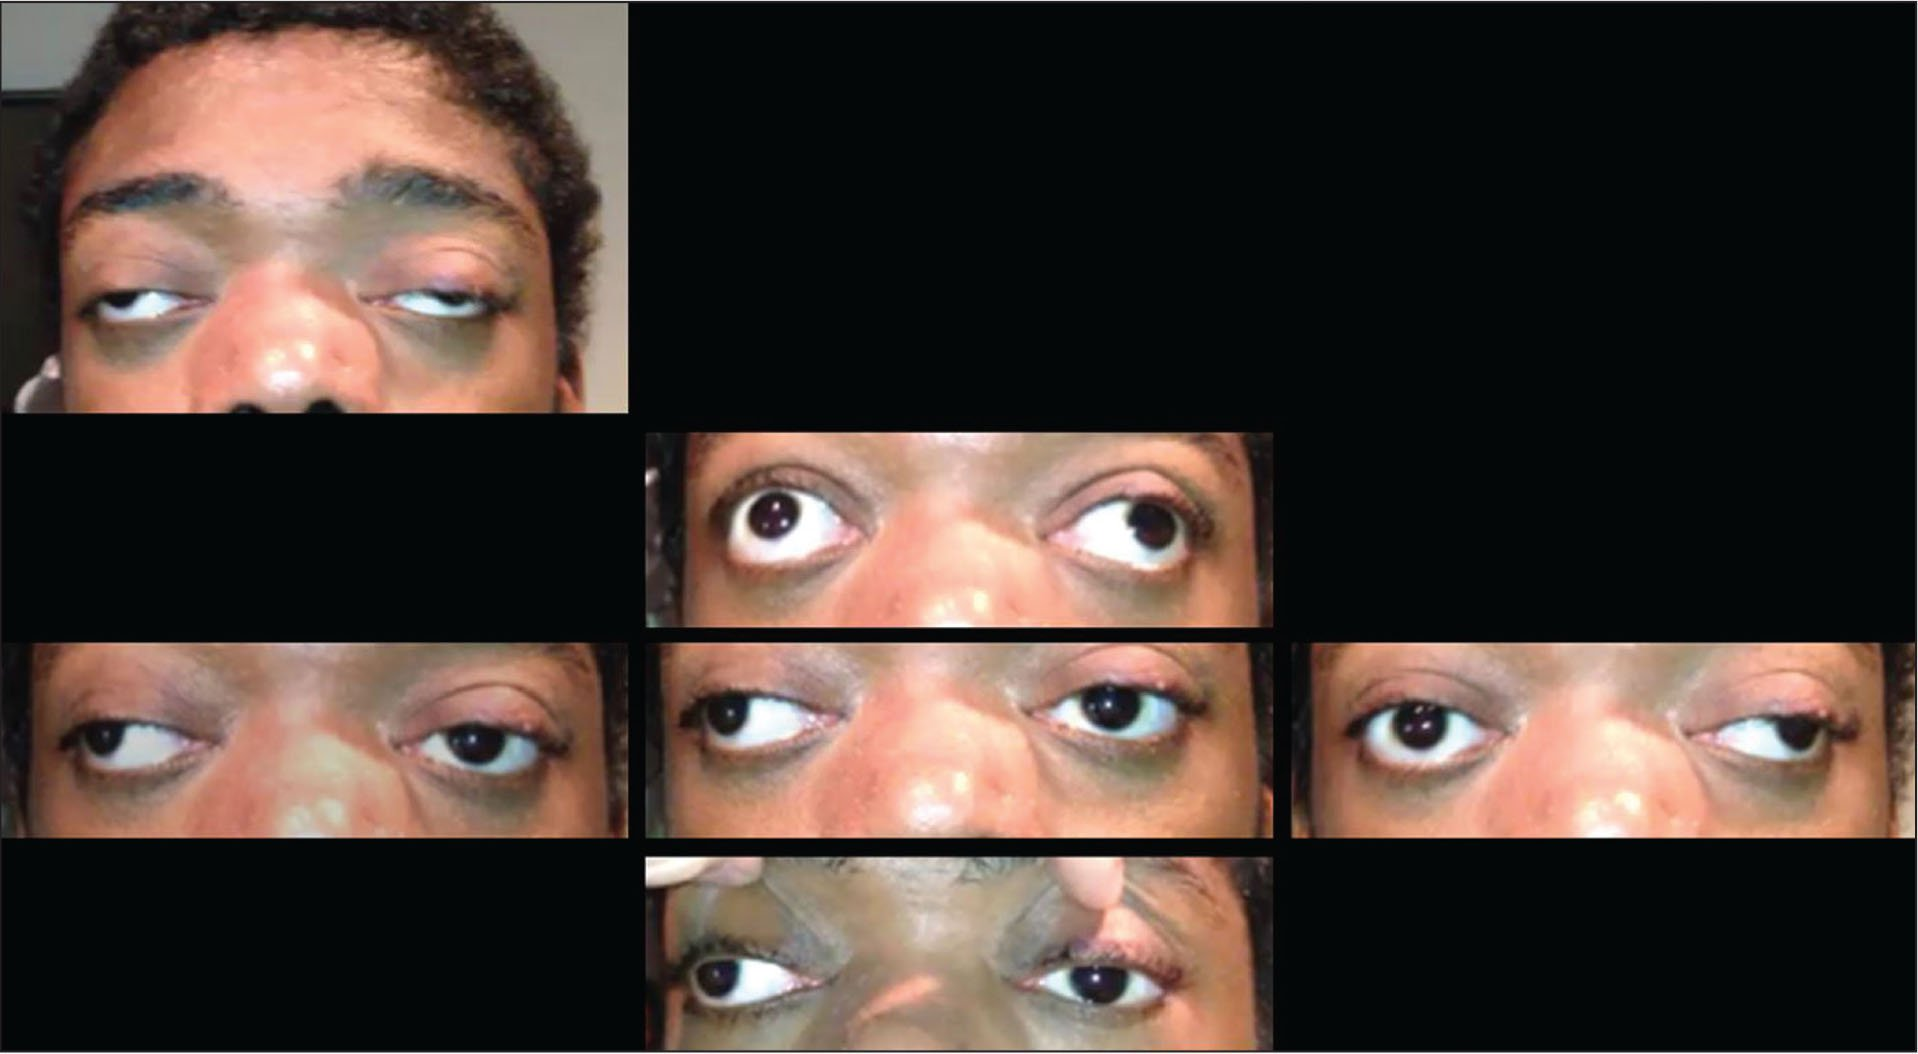 Case 1 at 21 years of age with progressive ptosis, exotropia, and ophthalmoplegia associated with epidermolysis bullosa simplex associated with muscular dystrophy and plectin deficiency.